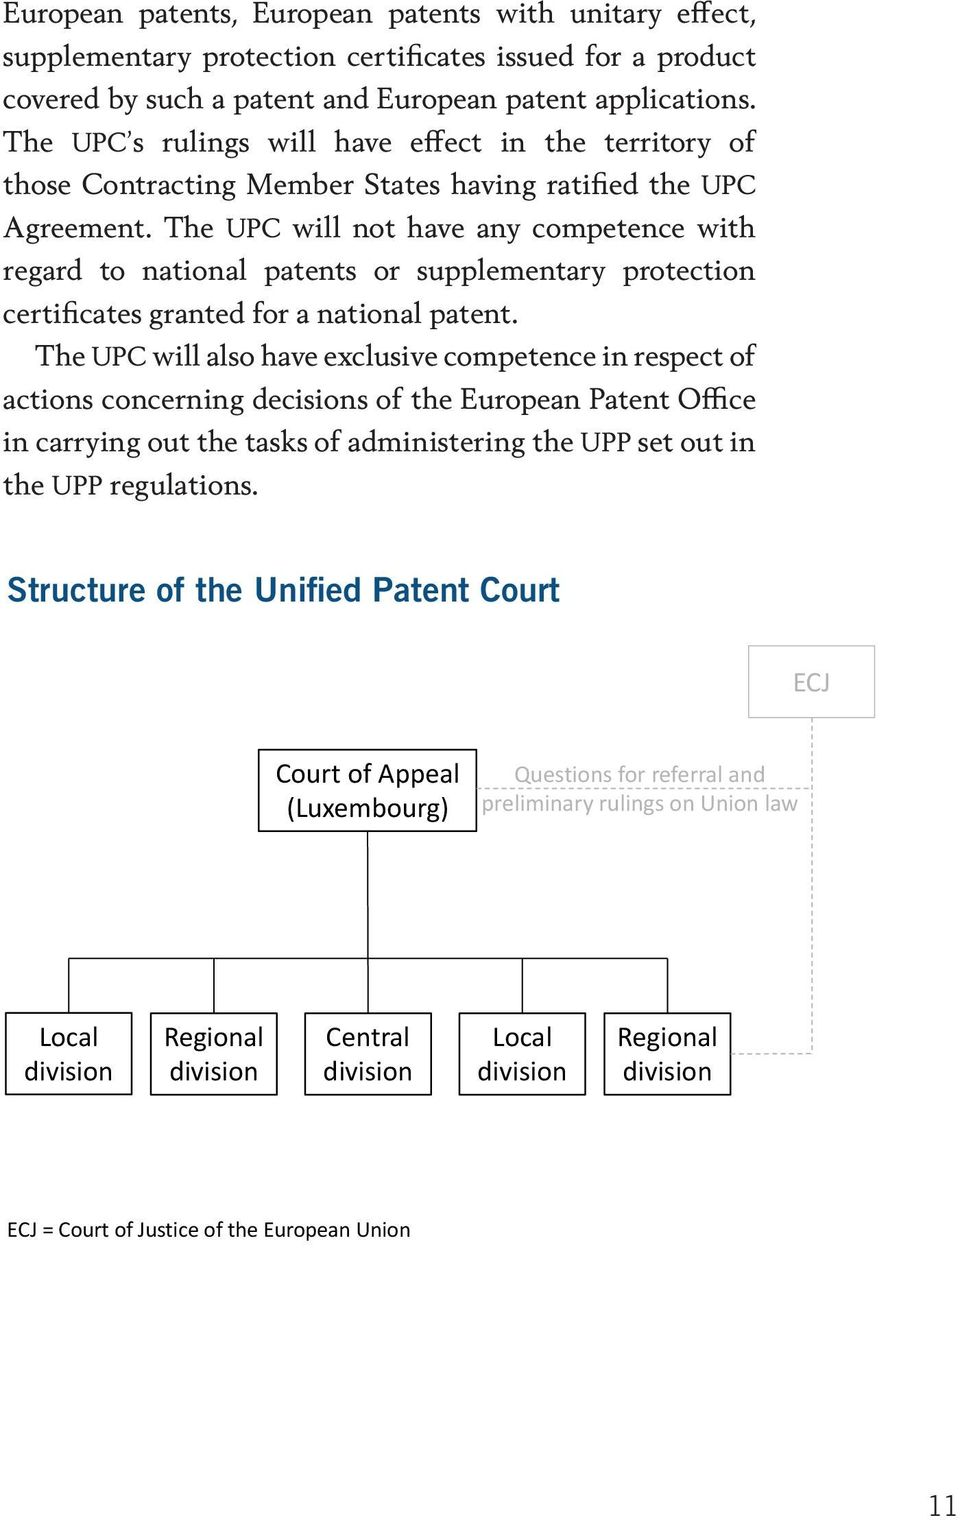 The UPC will not have any competence with regard to national patents or supplementary protection certificates granted for a national patent.